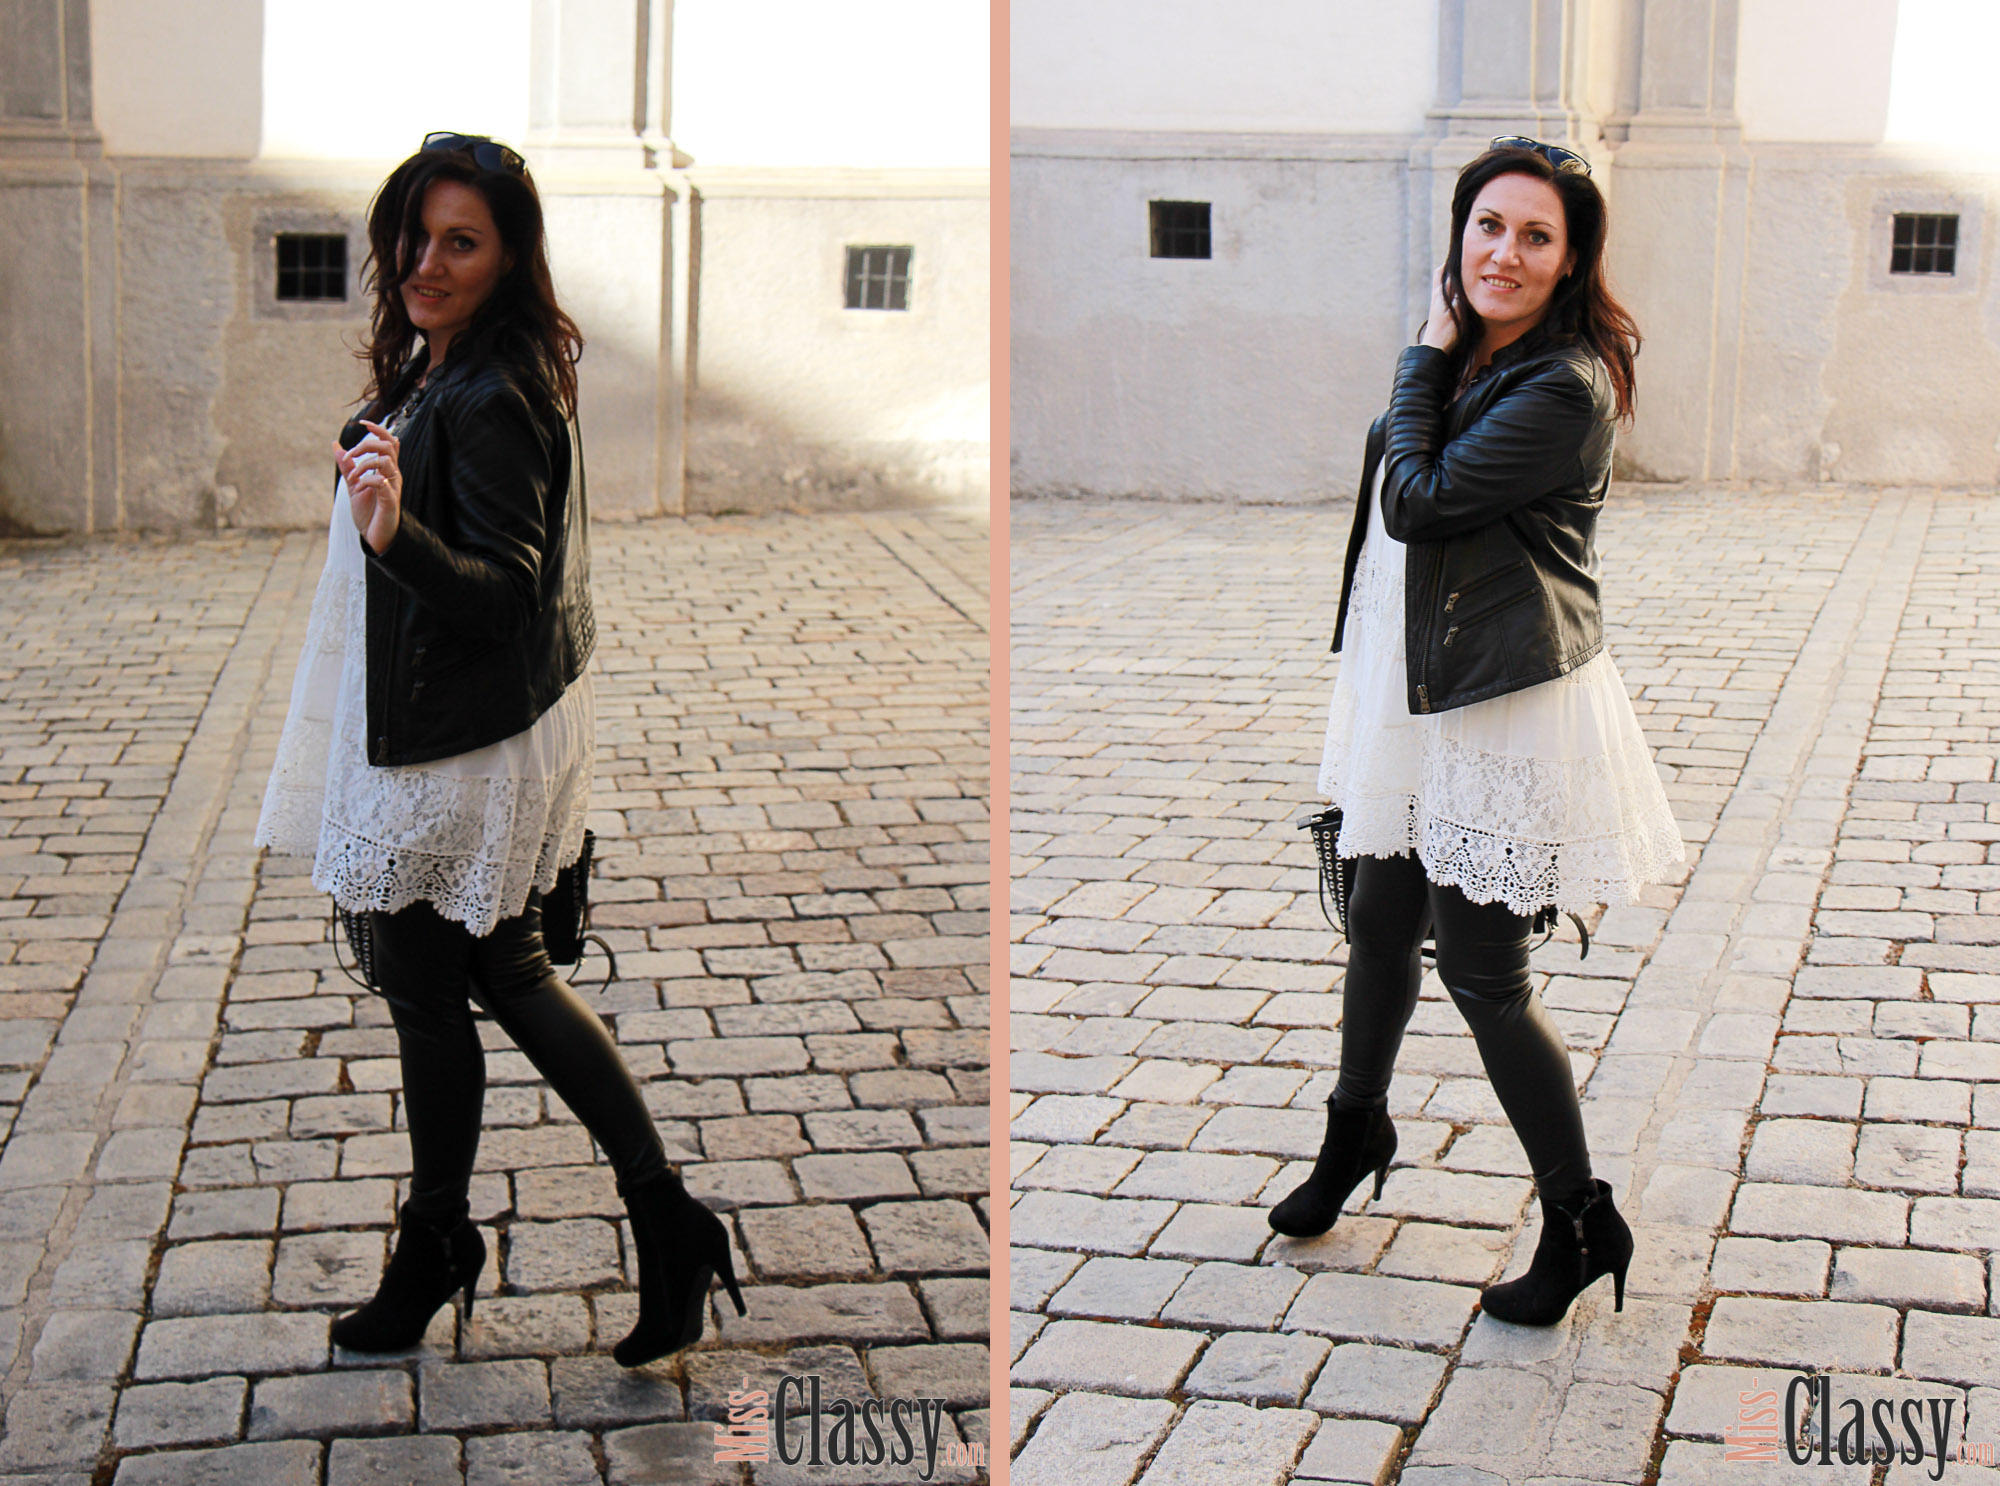 outfit weisses kleid mit spitze mein outfit f r den bloggerbrunch miss classy. Black Bedroom Furniture Sets. Home Design Ideas